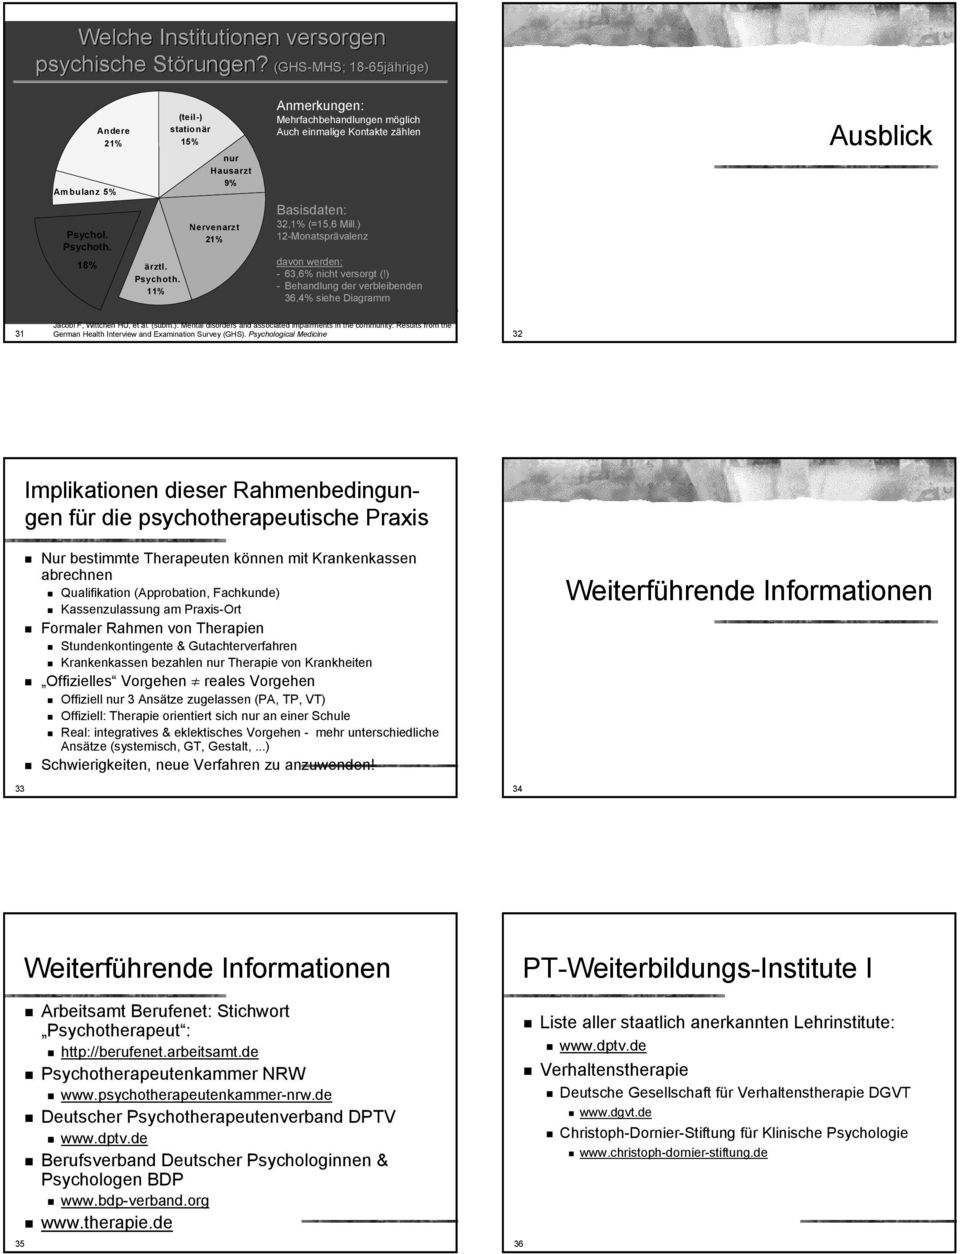 ) 12-Monatsprävalenz davon werden: - 63,6% nicht versorgt (!) - Behandlung der verbleibenden 36,4% siehe Diagramm Ausblick 31 Jacobi F, Wittchen HU, et al. (subm.). Mental disorders and associated impairments in the community: Results from the German Health Interview and Examination Survey (GHS).